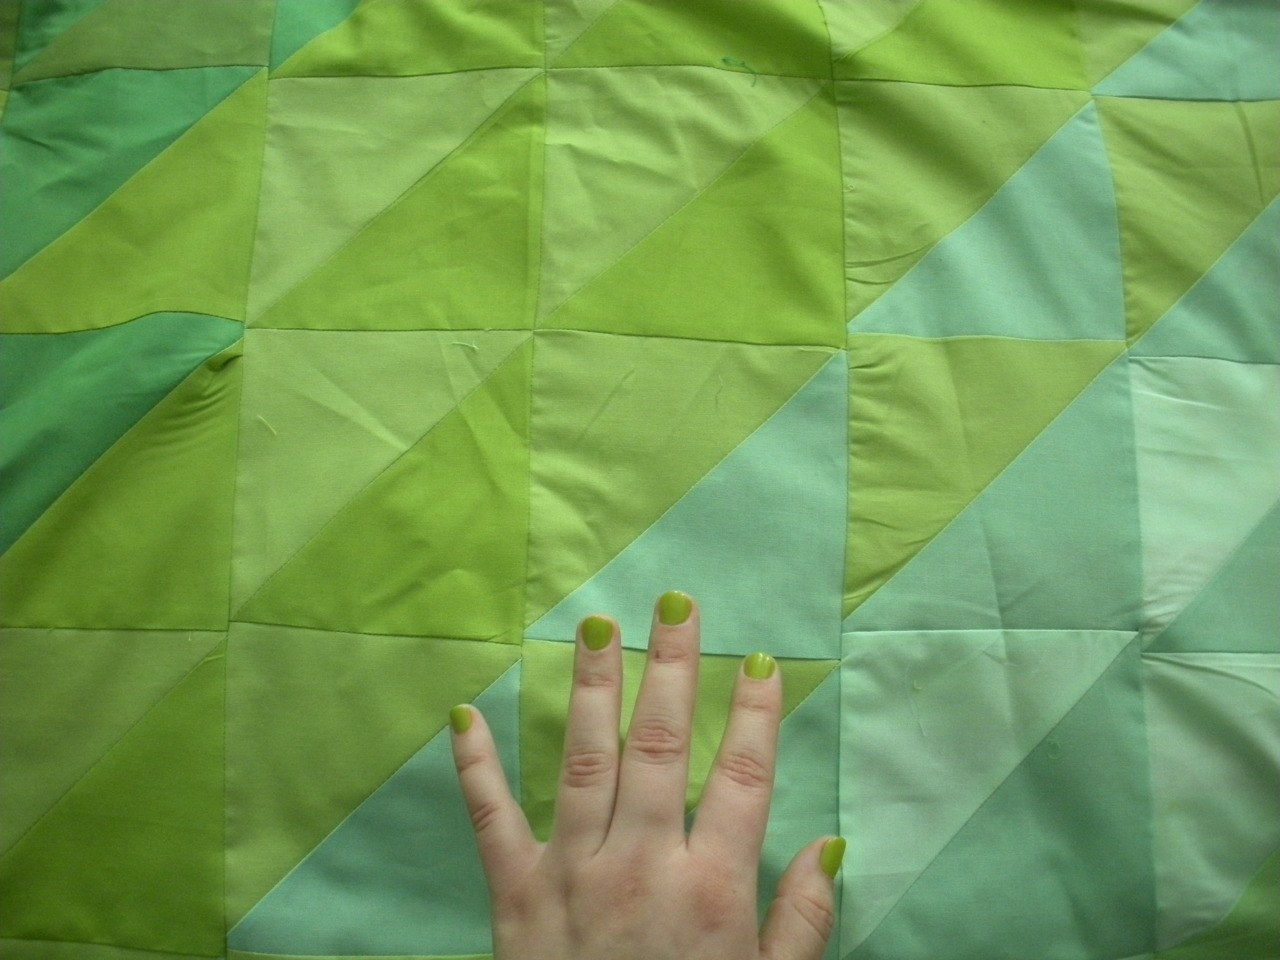 My nail polish matches the quilt I am working on Color synchronicity, maybe. More likely cause: my undying attraction to the color green.